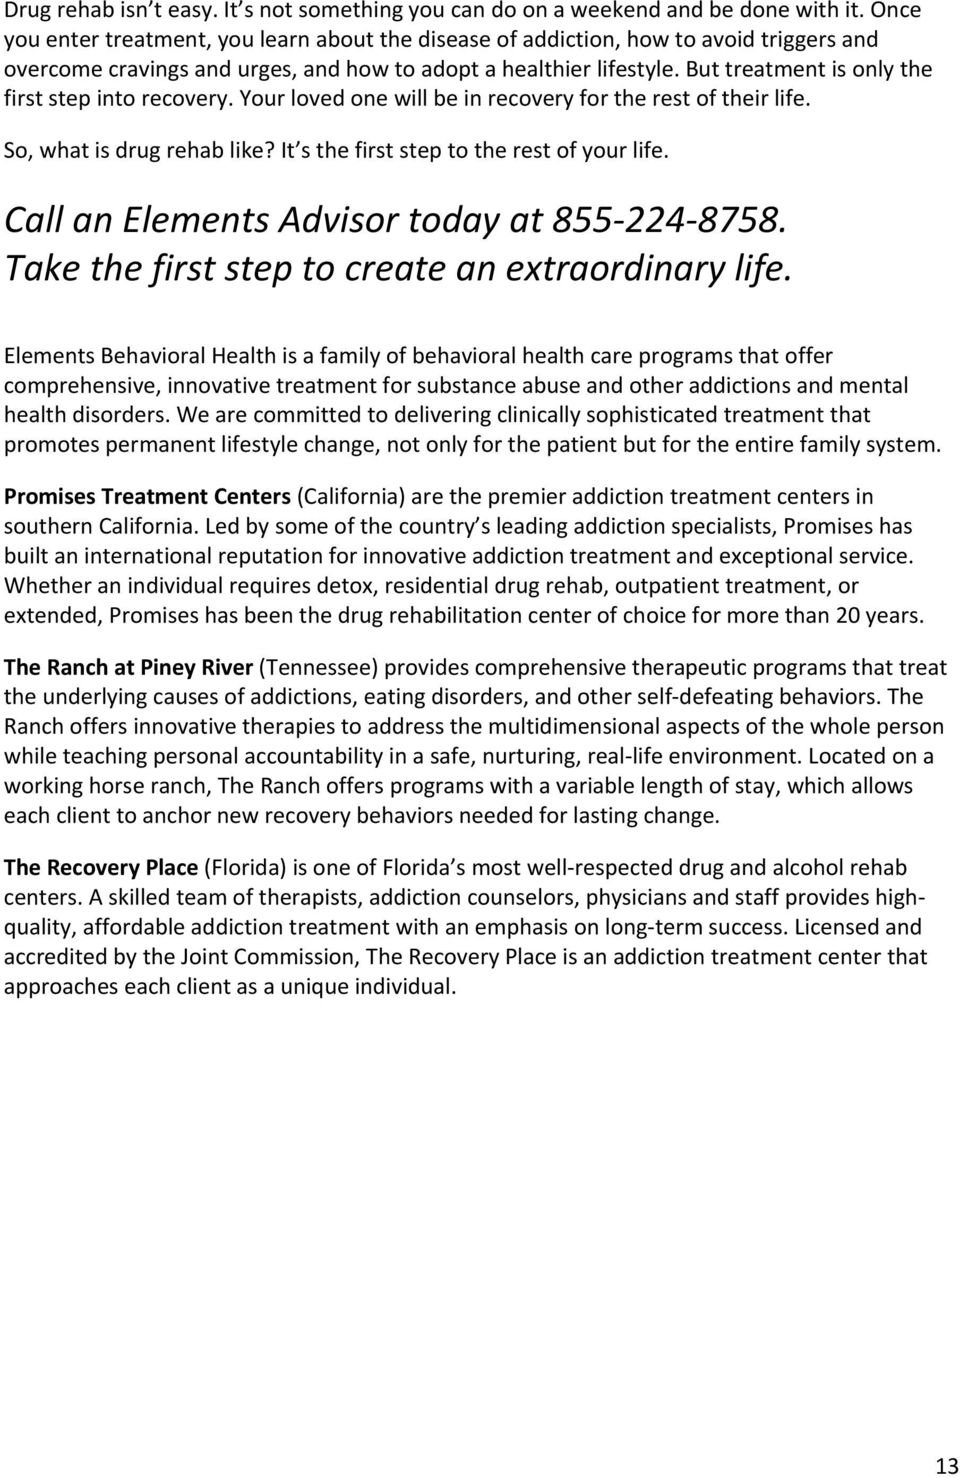 But treatment is only the first step into recovery. Your loved one will be in recovery for the rest of their life. So, what is drug rehab like? It s the first step to the rest of your life.